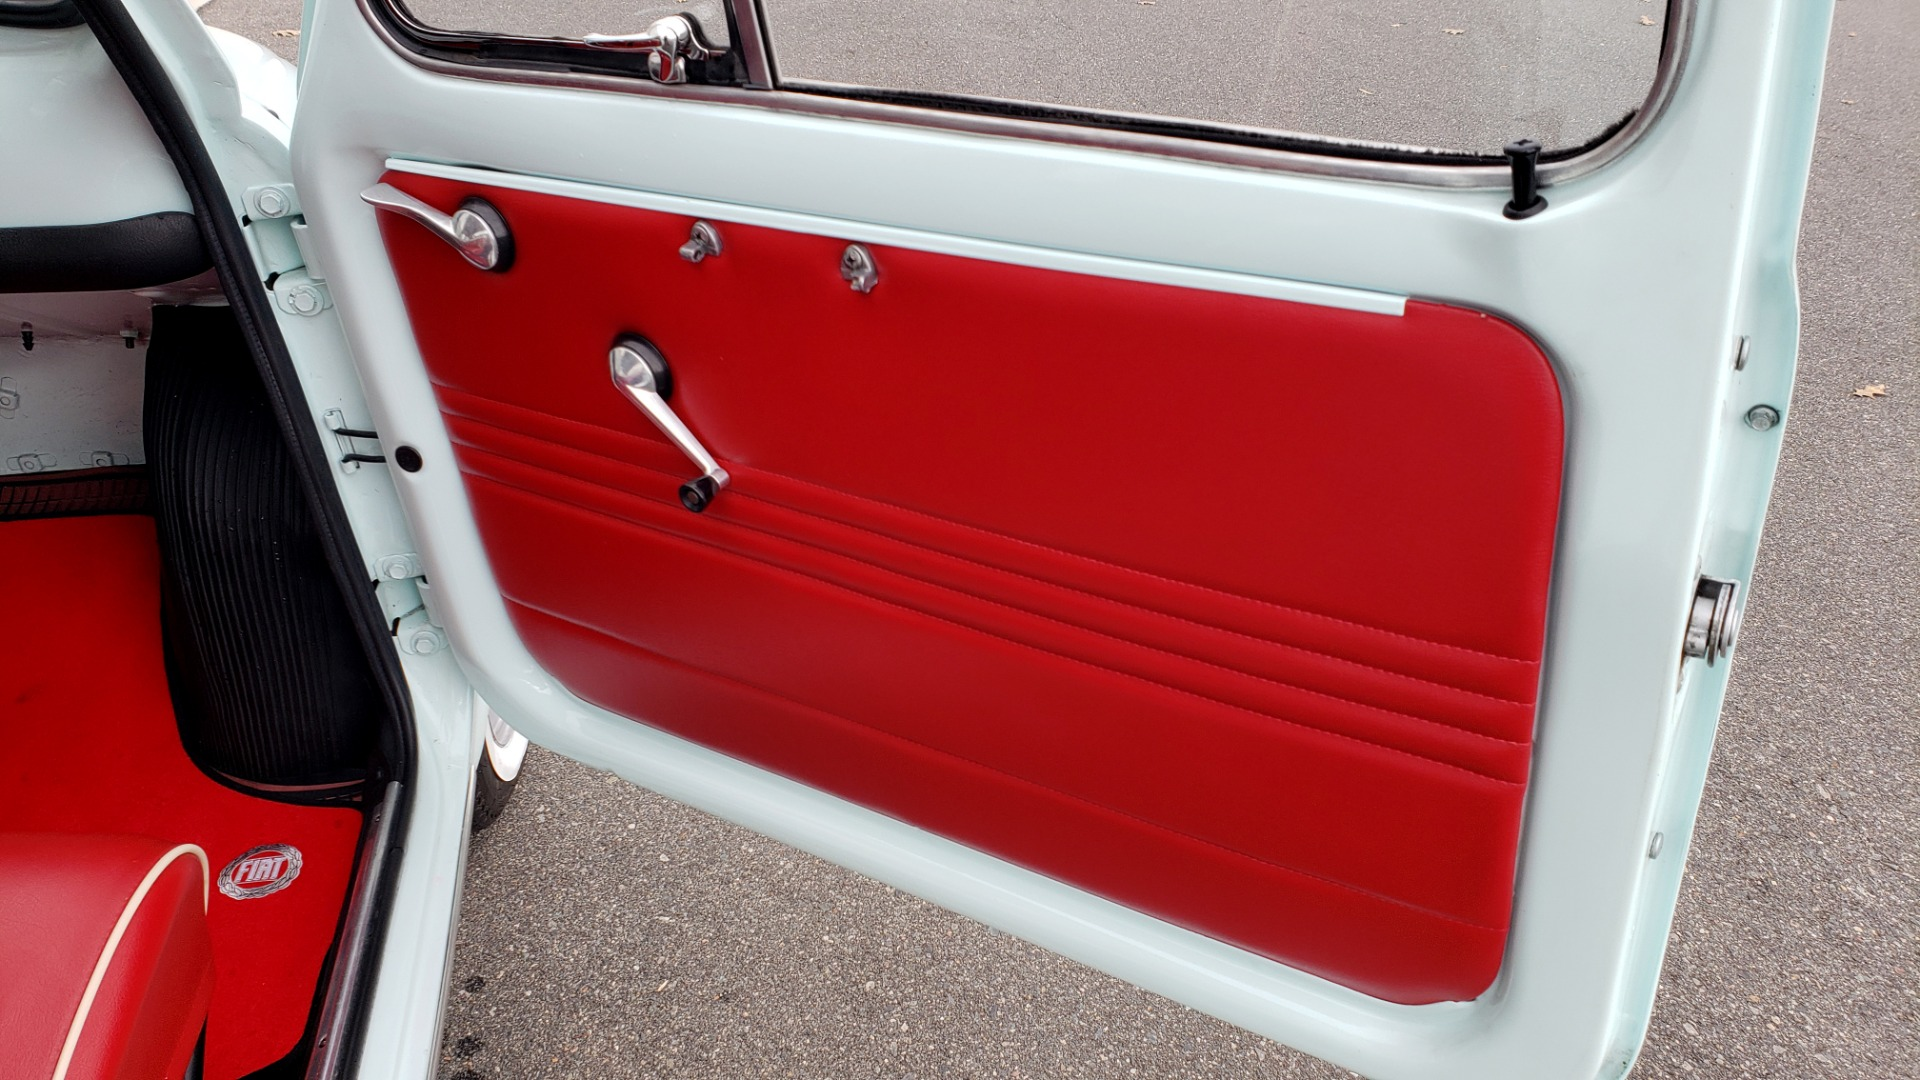 Used 1968 FIAT 500 NUOVA / SOFT-TOP / LUGGAGE RACK / RESTORED, LIKE NEW for sale $21,900 at Formula Imports in Charlotte NC 28227 28